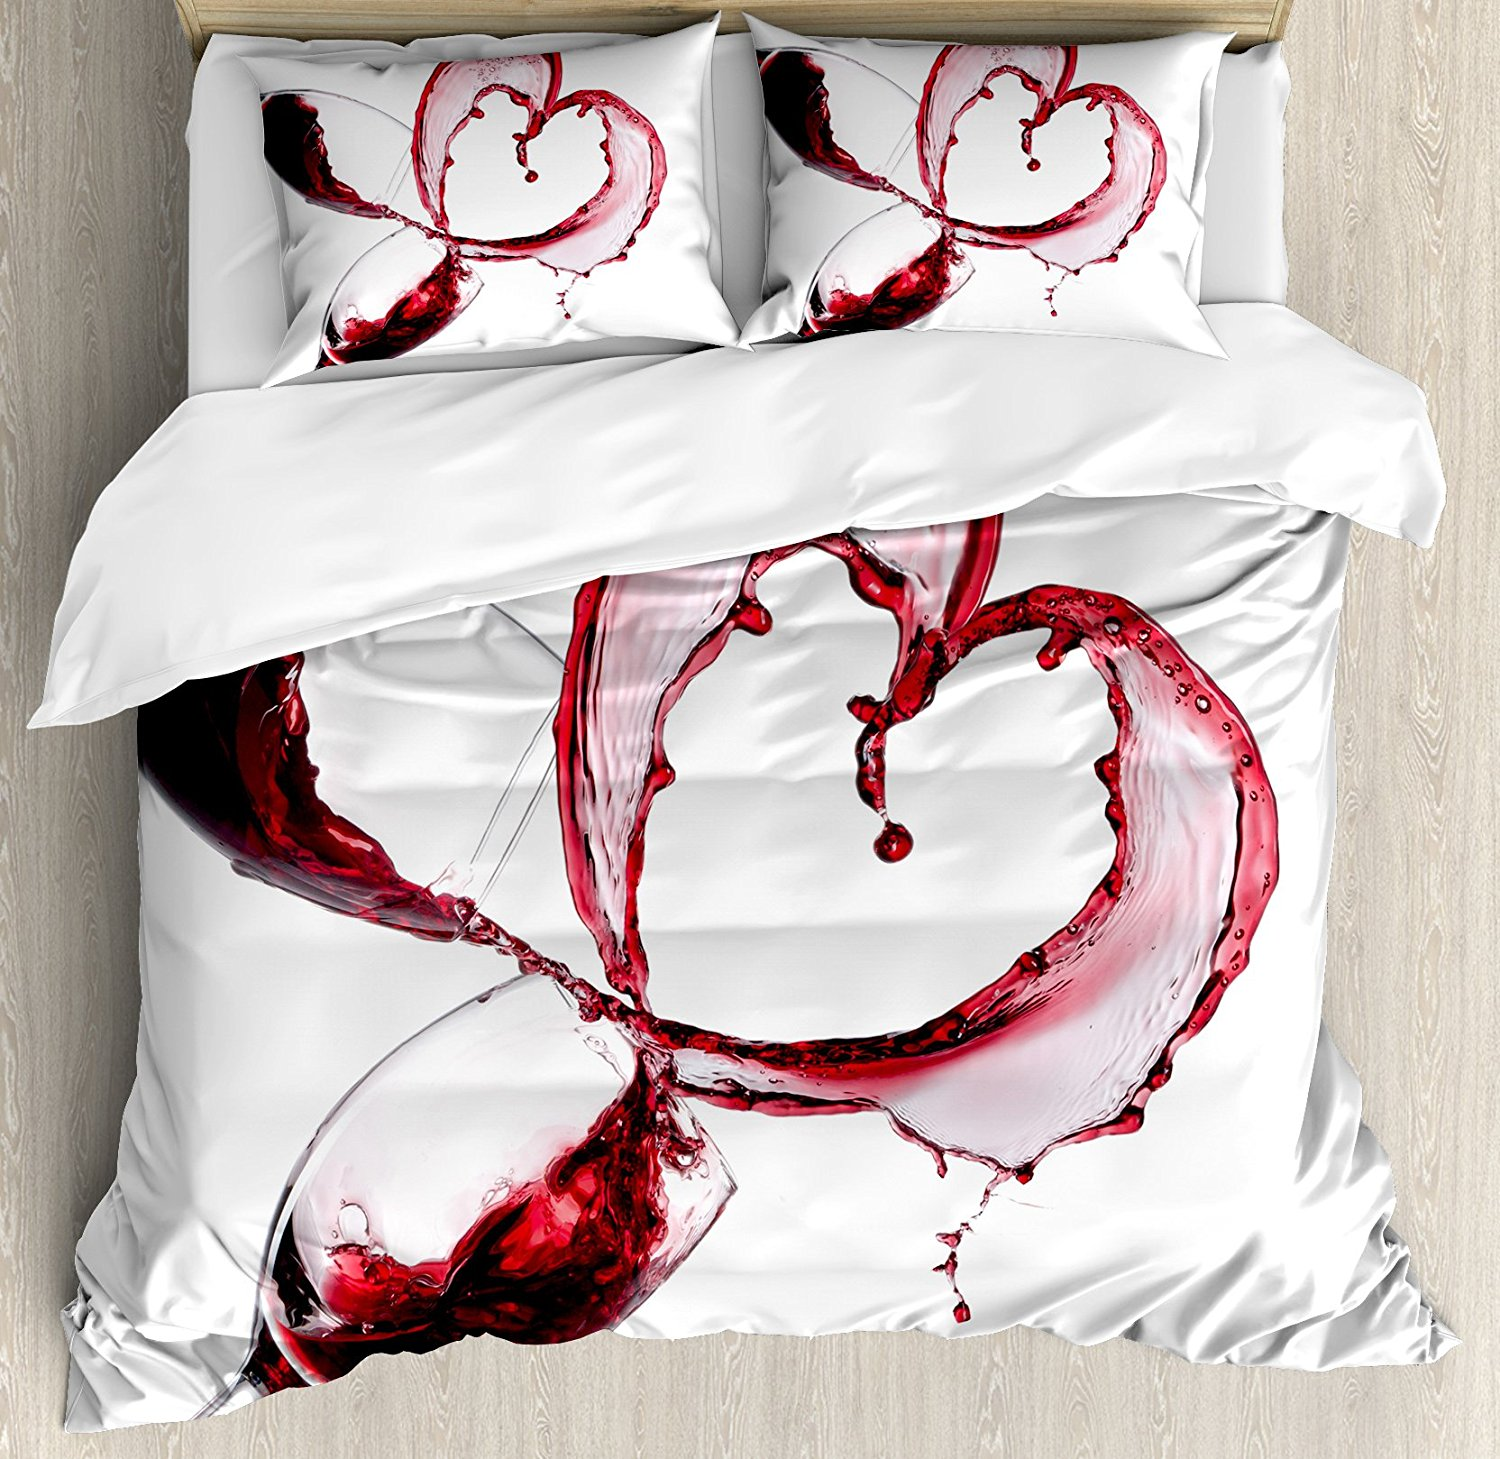 duvet red set bedding spice lola cover